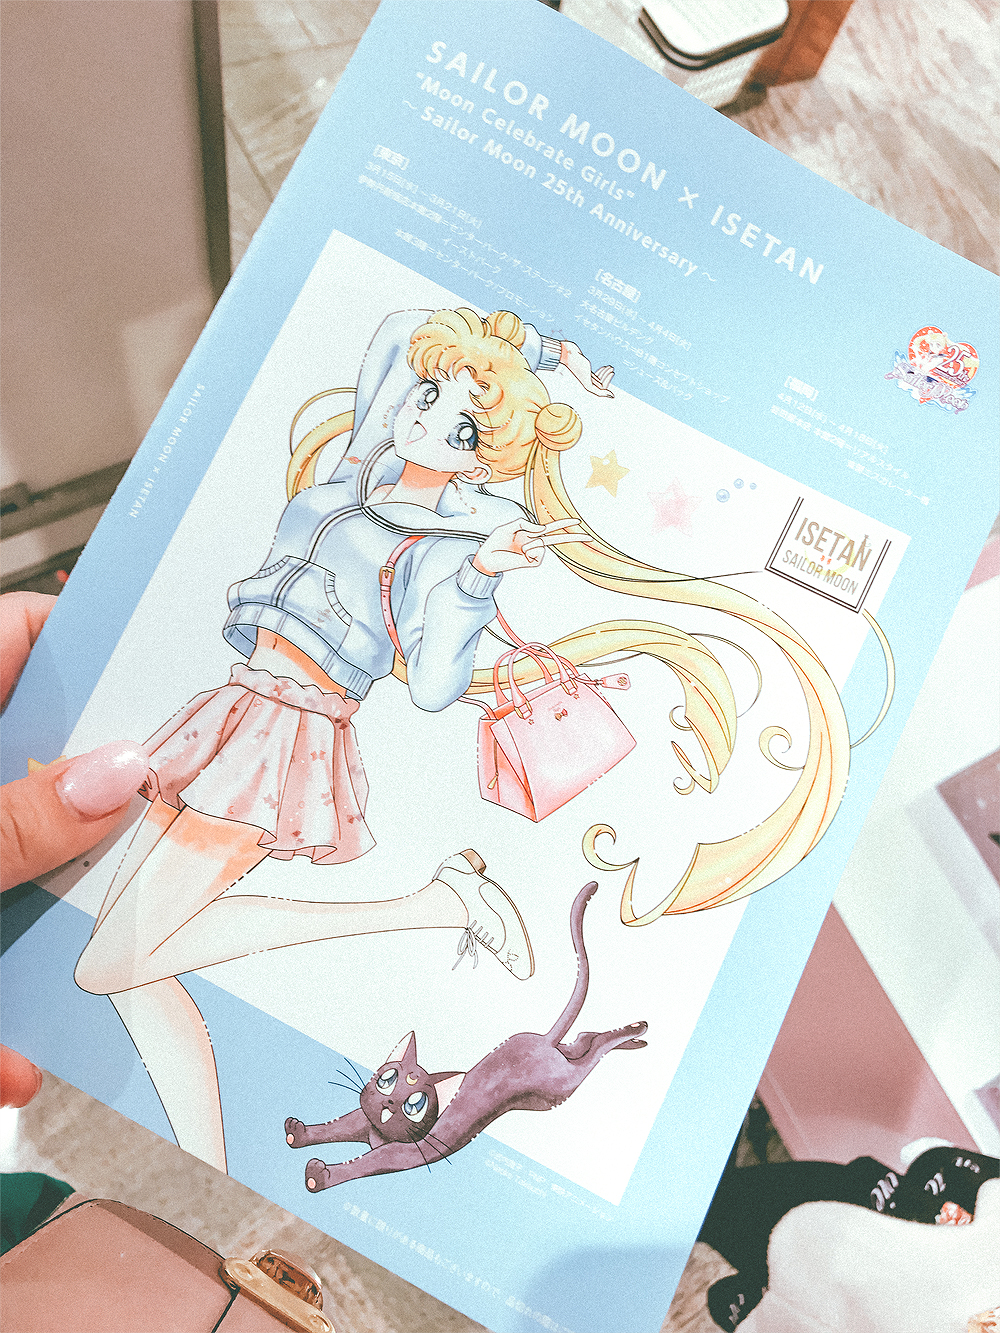 We caught the final days of the Sailor Moon pop-up shop at the Isetan. I definitely felt a bit out of place in such an upscale department store, but I was overjoyed to finally see some of the exclusive merchandise for sale.